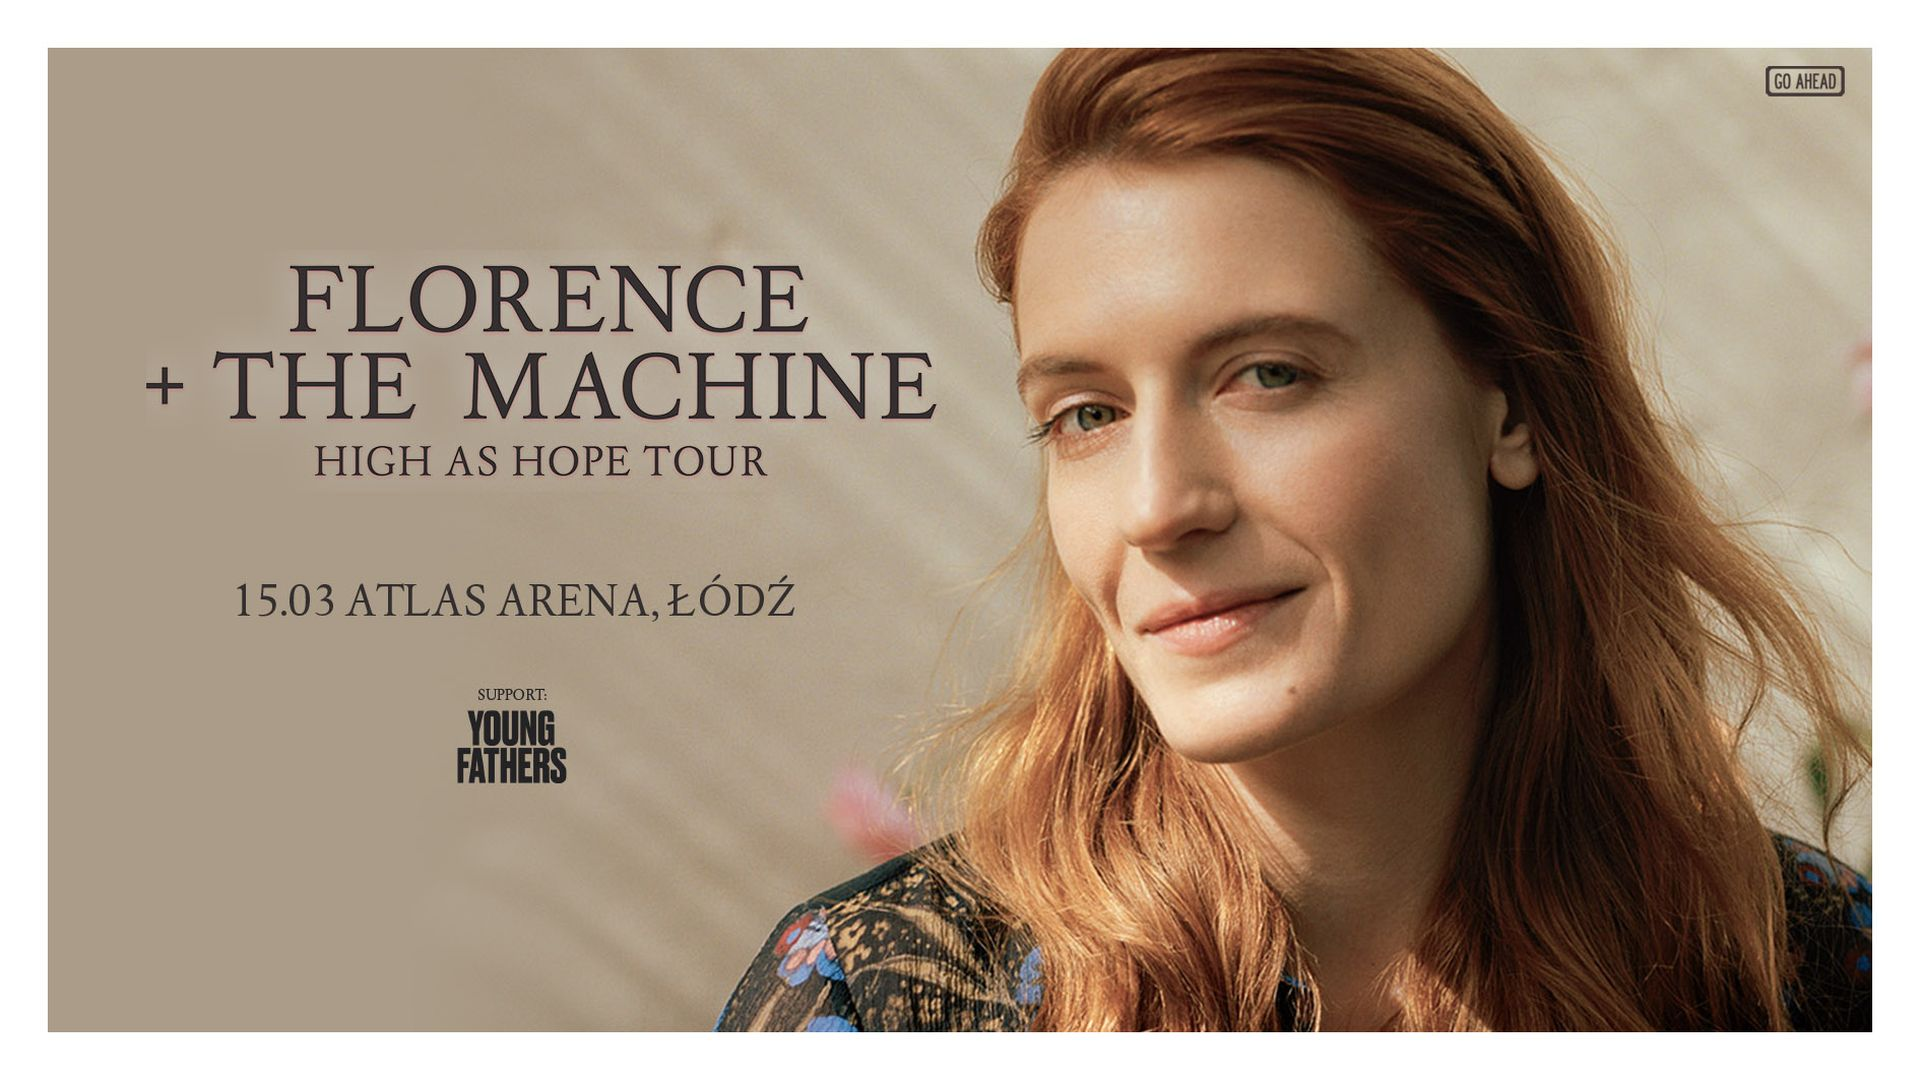 Bilety kolekcjonerskie - Florence and the Machine